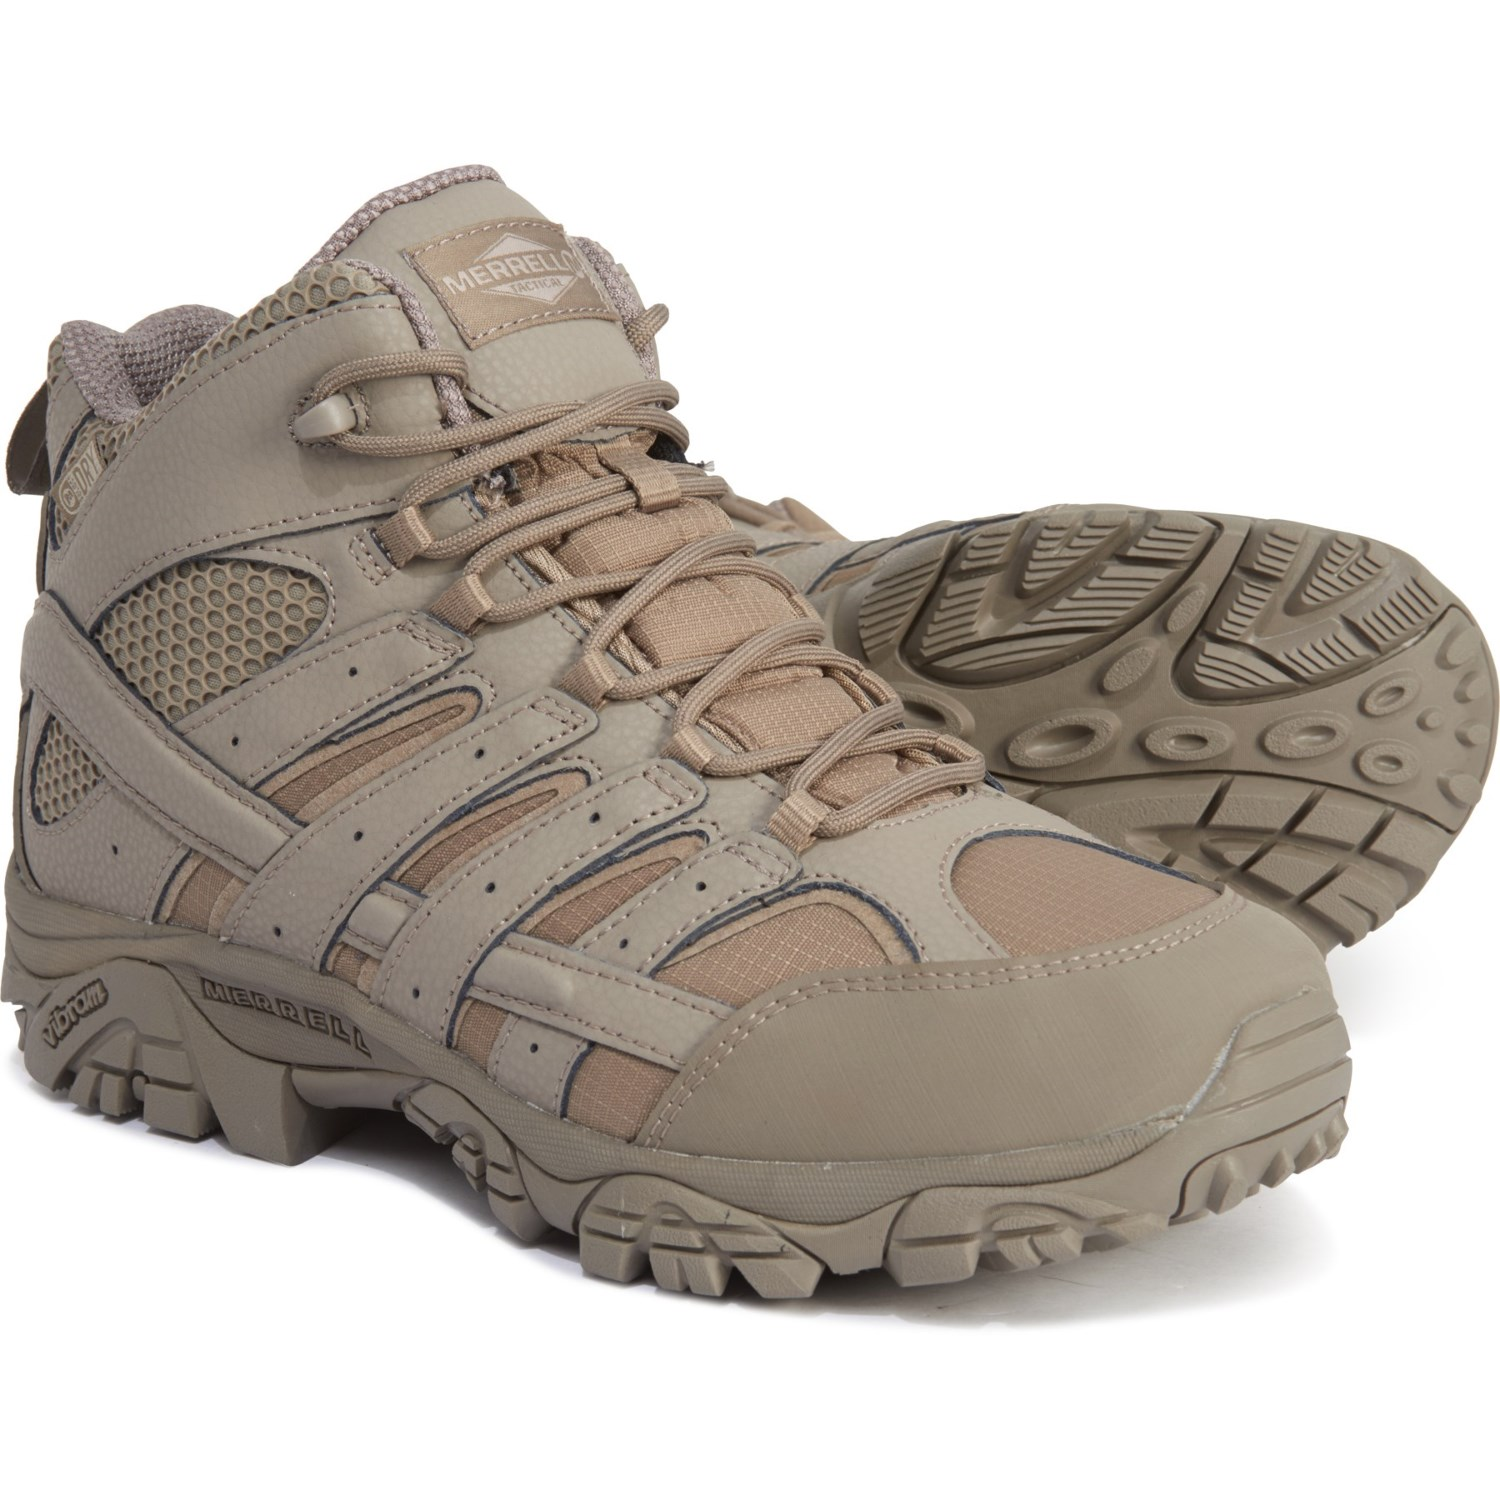 b3e5281a9ed Merrell Moab 2 Mid Tactical Boots (For Men) - Save 38%